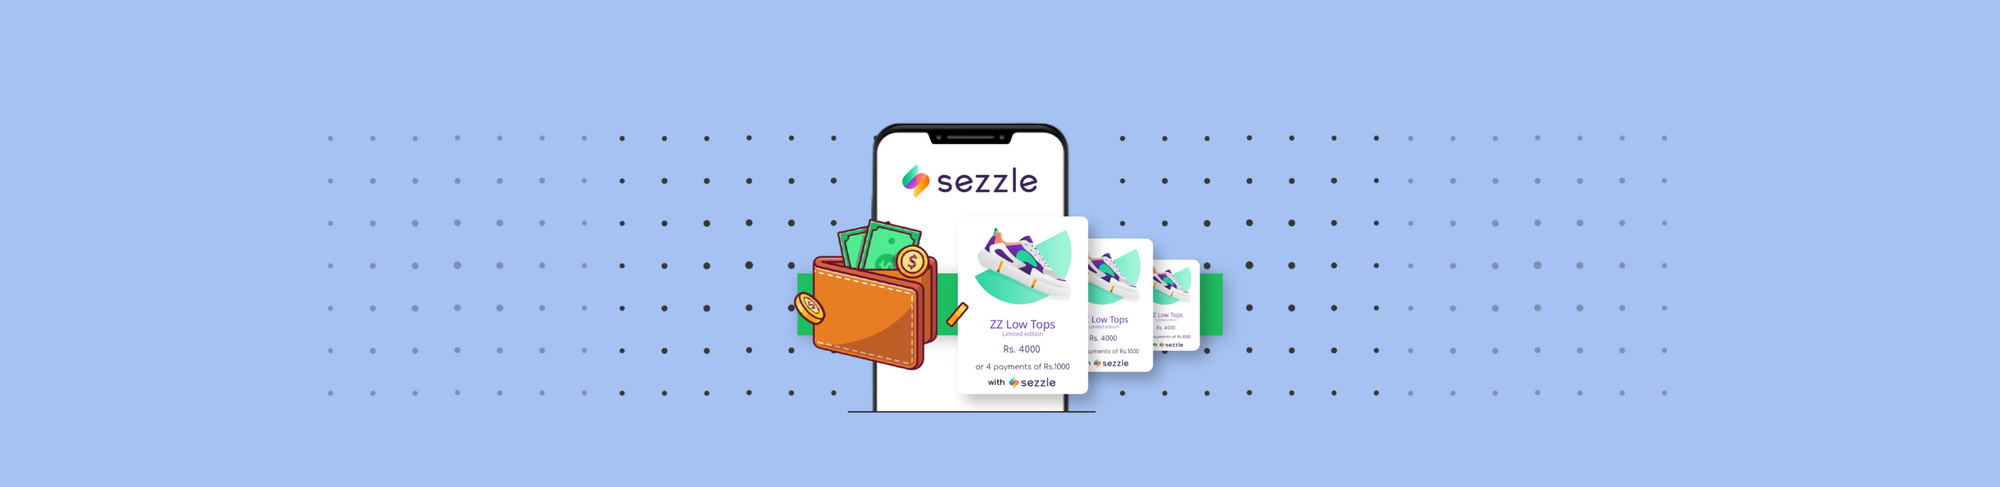 Sezzle - A buy now pay later solution